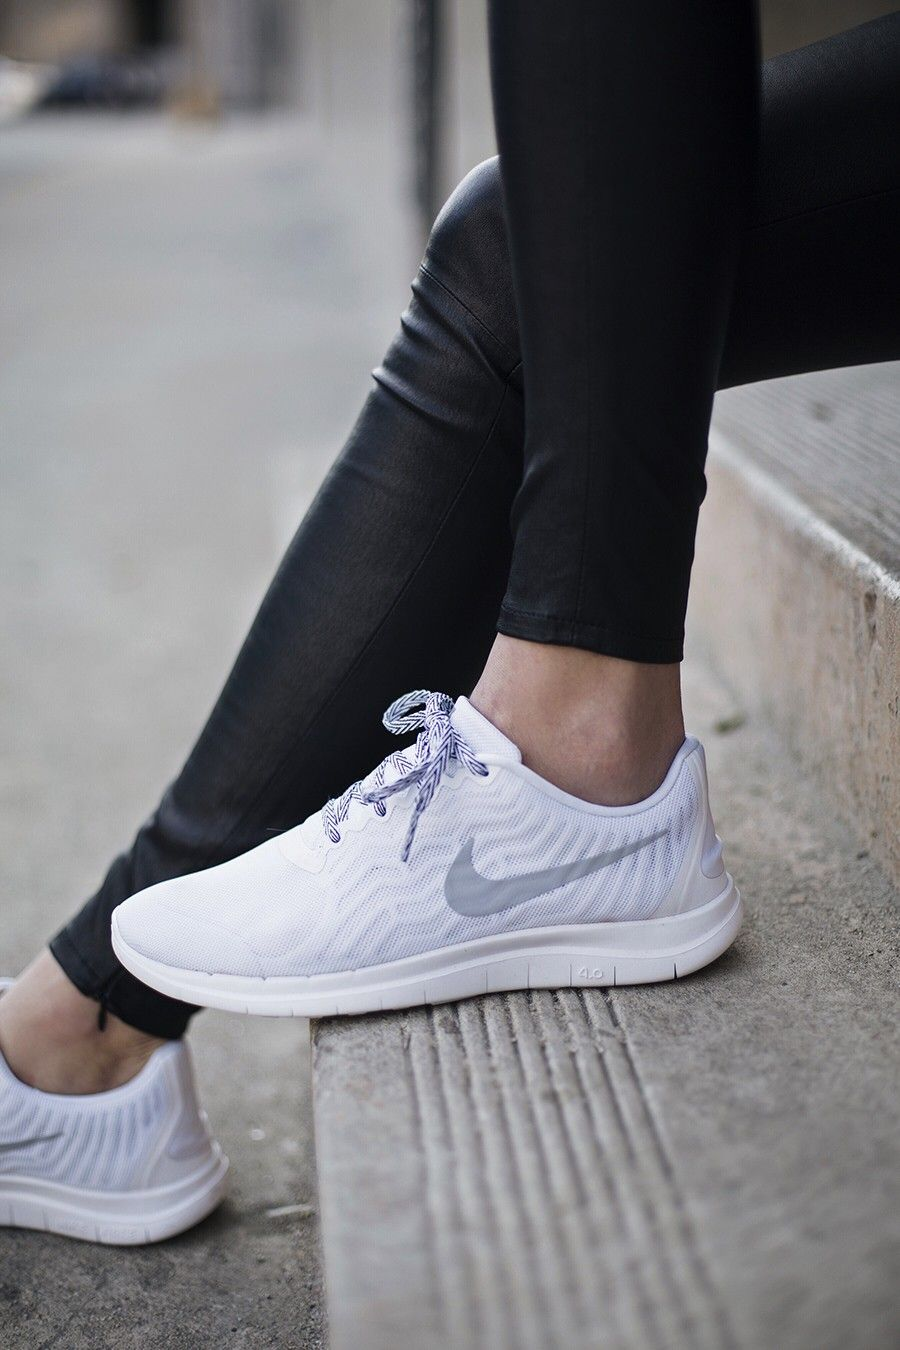 Nike Air Max  Shoes Women Girl Lady Fashion Trainers